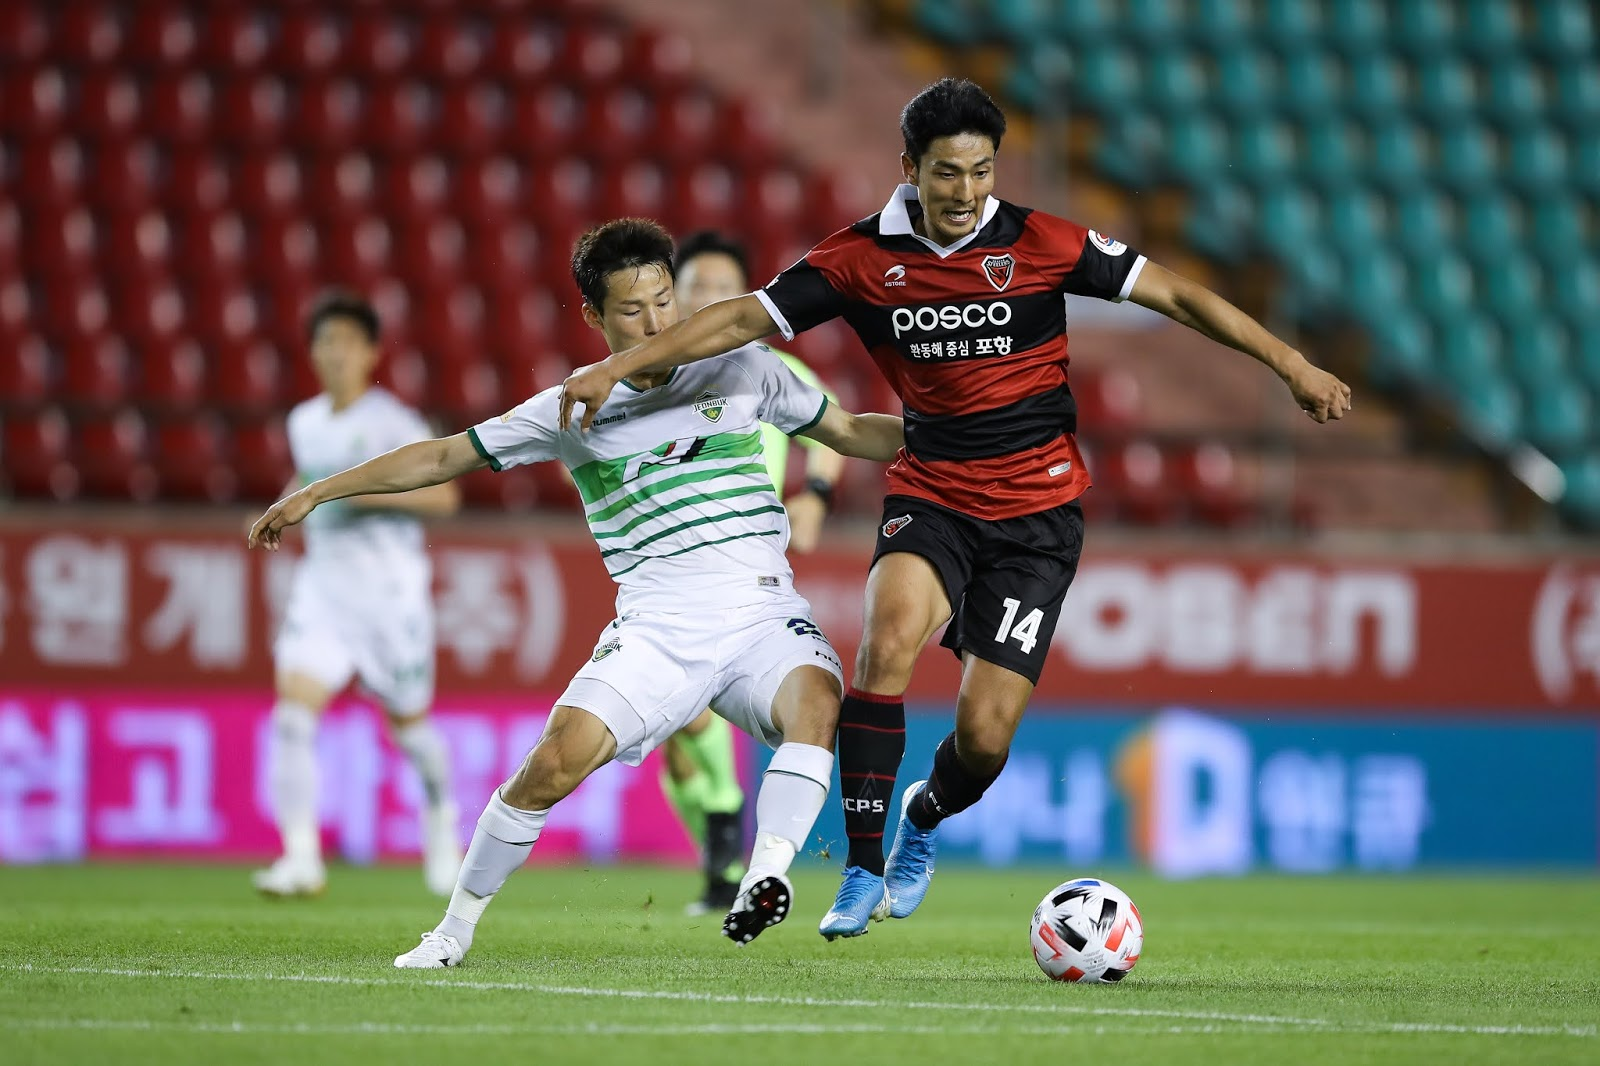 K League 1 Preview: Jeonbuk Hyundai Motors Vs. Pohang Steelers